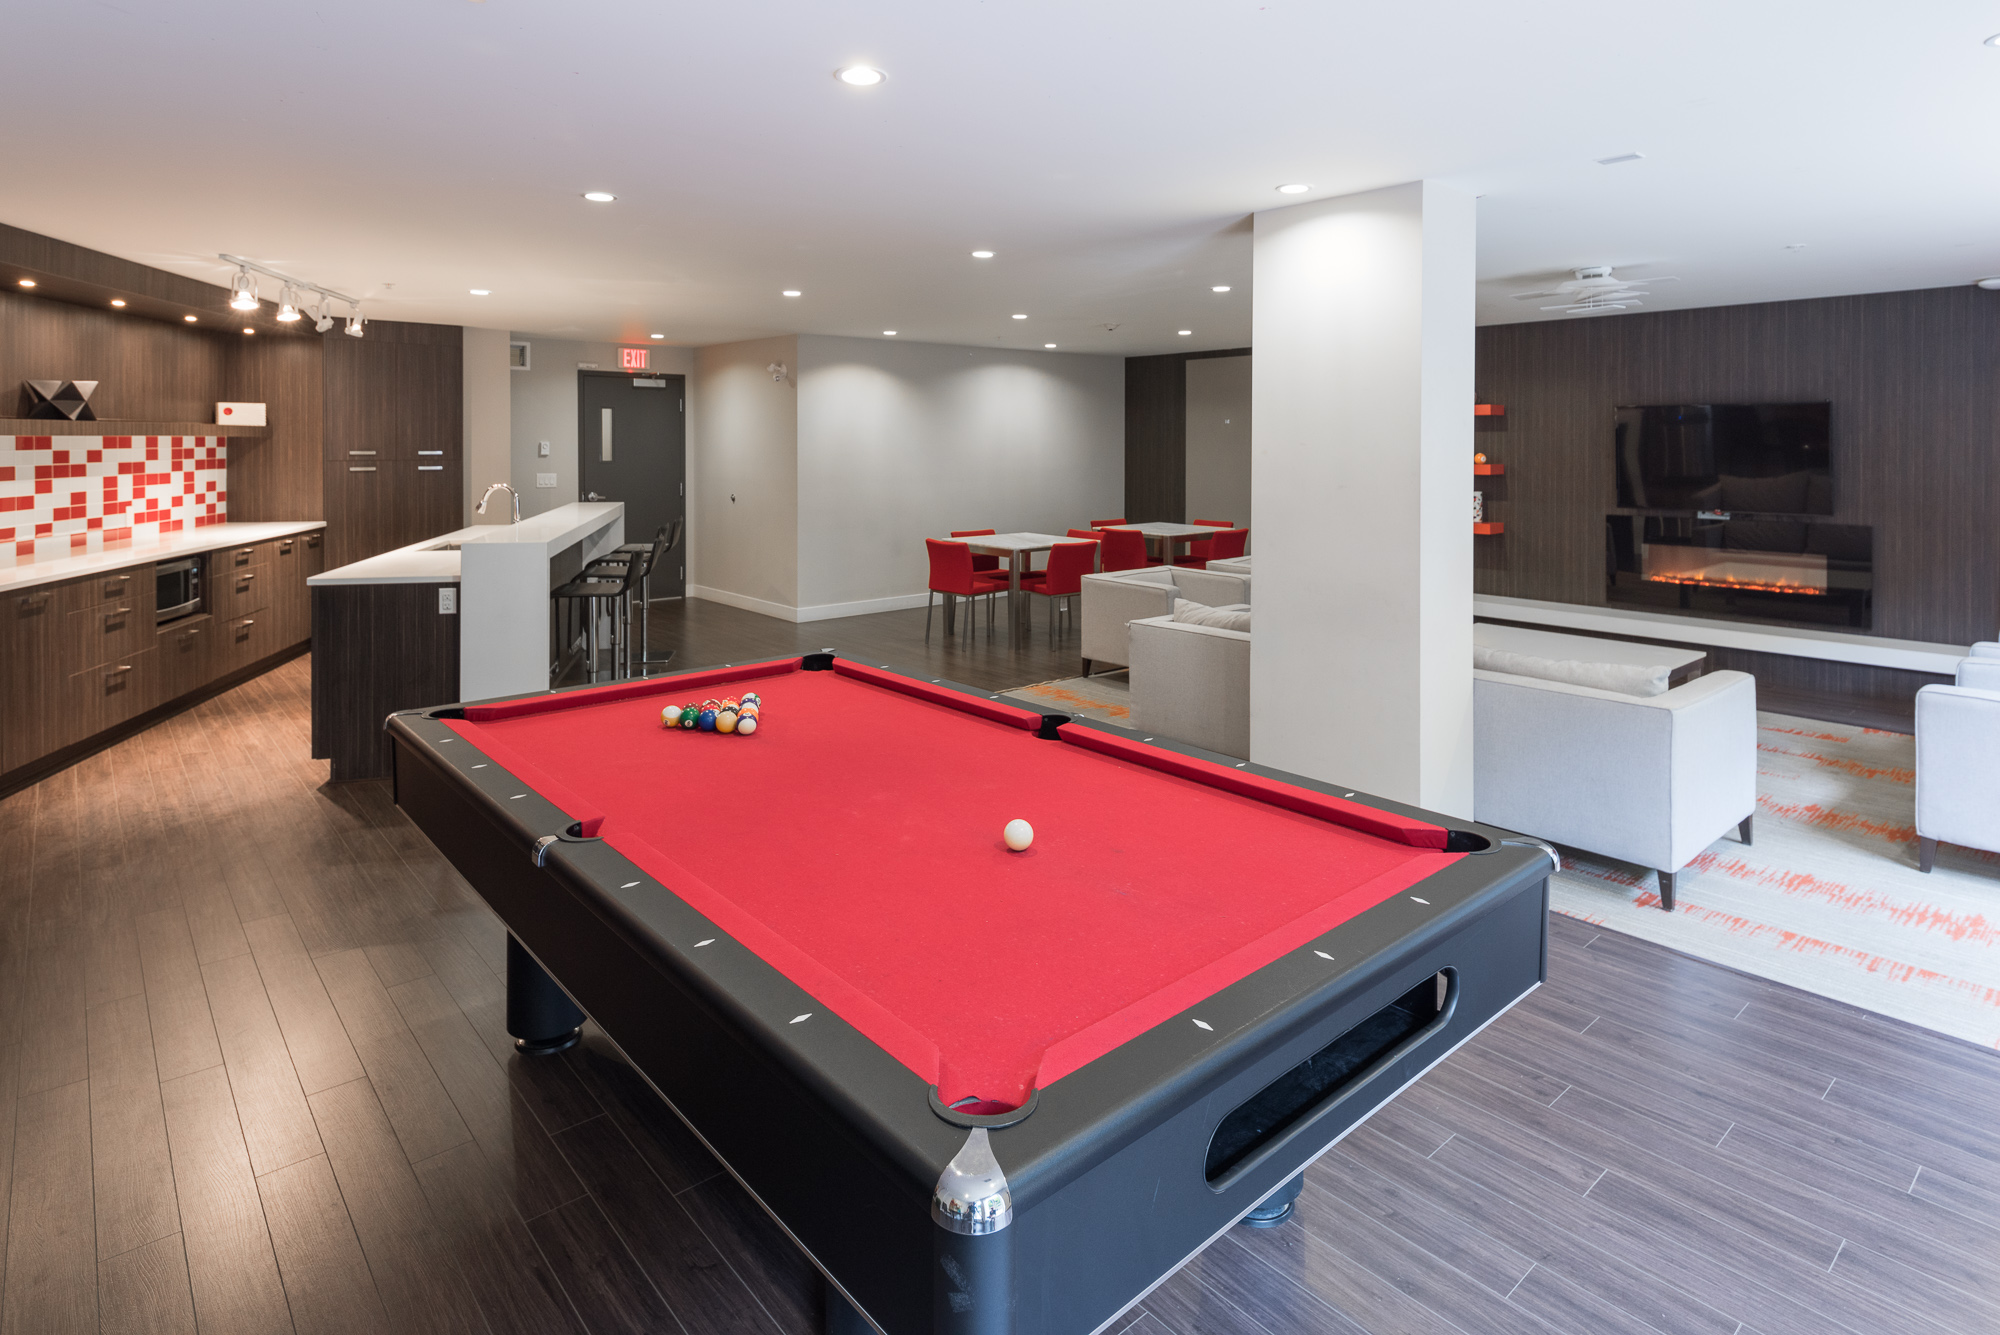 Billiards in the Party Room